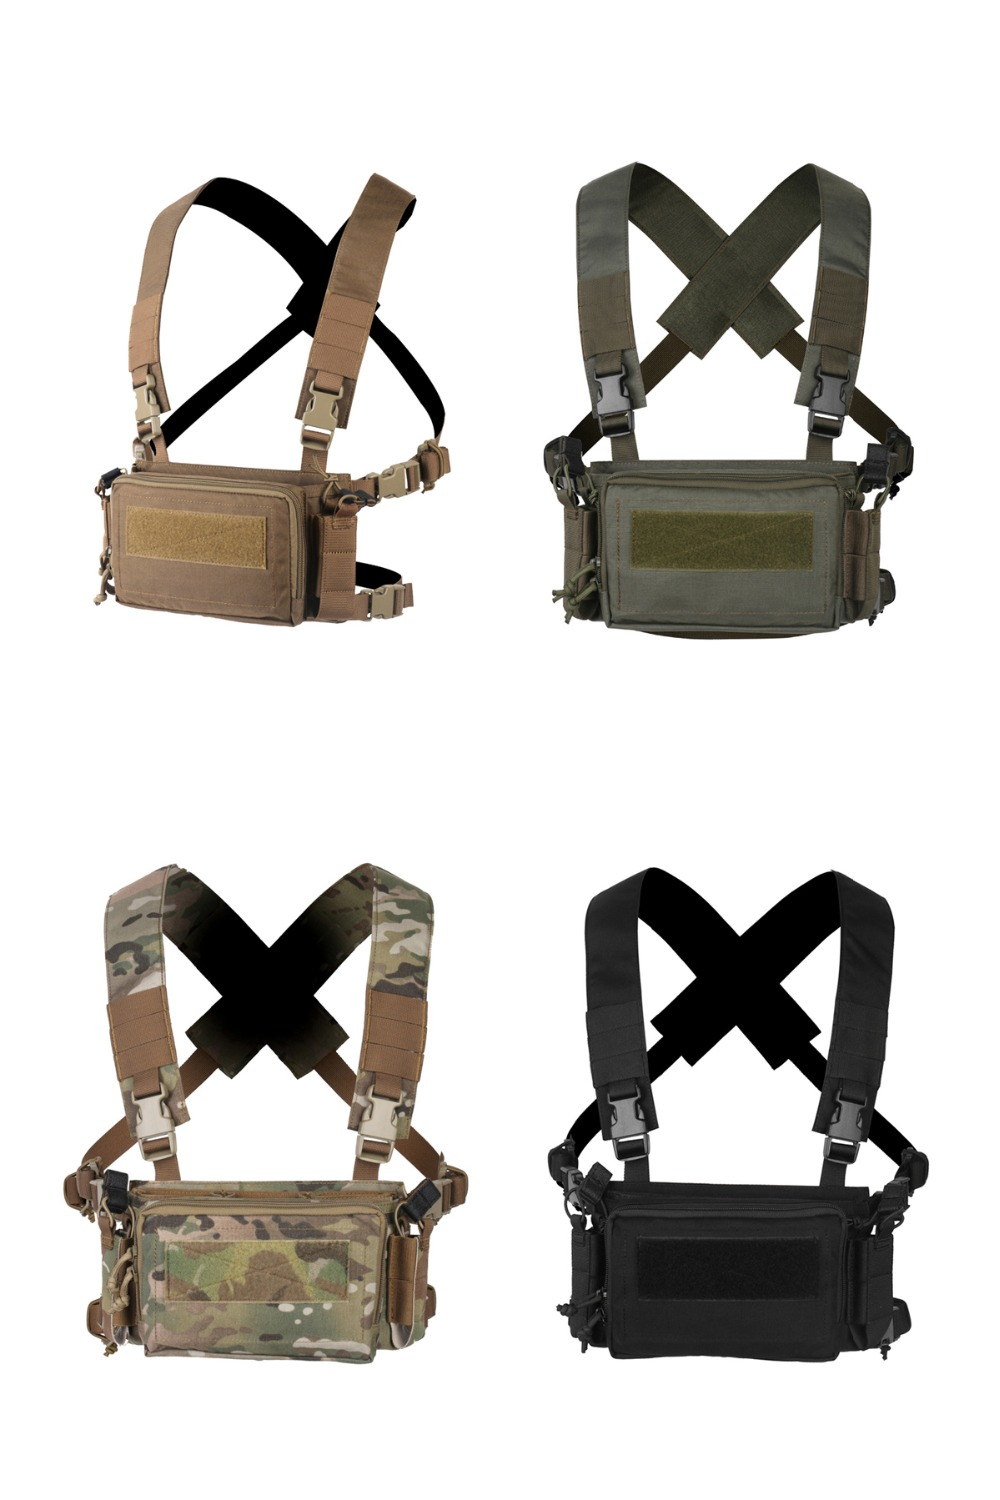 D3CRM Mini Tactical Chest Rig Haley Airsoft Hunting Vest Molle Pouch Simple Military Tactical Vest with Magazine Pouch